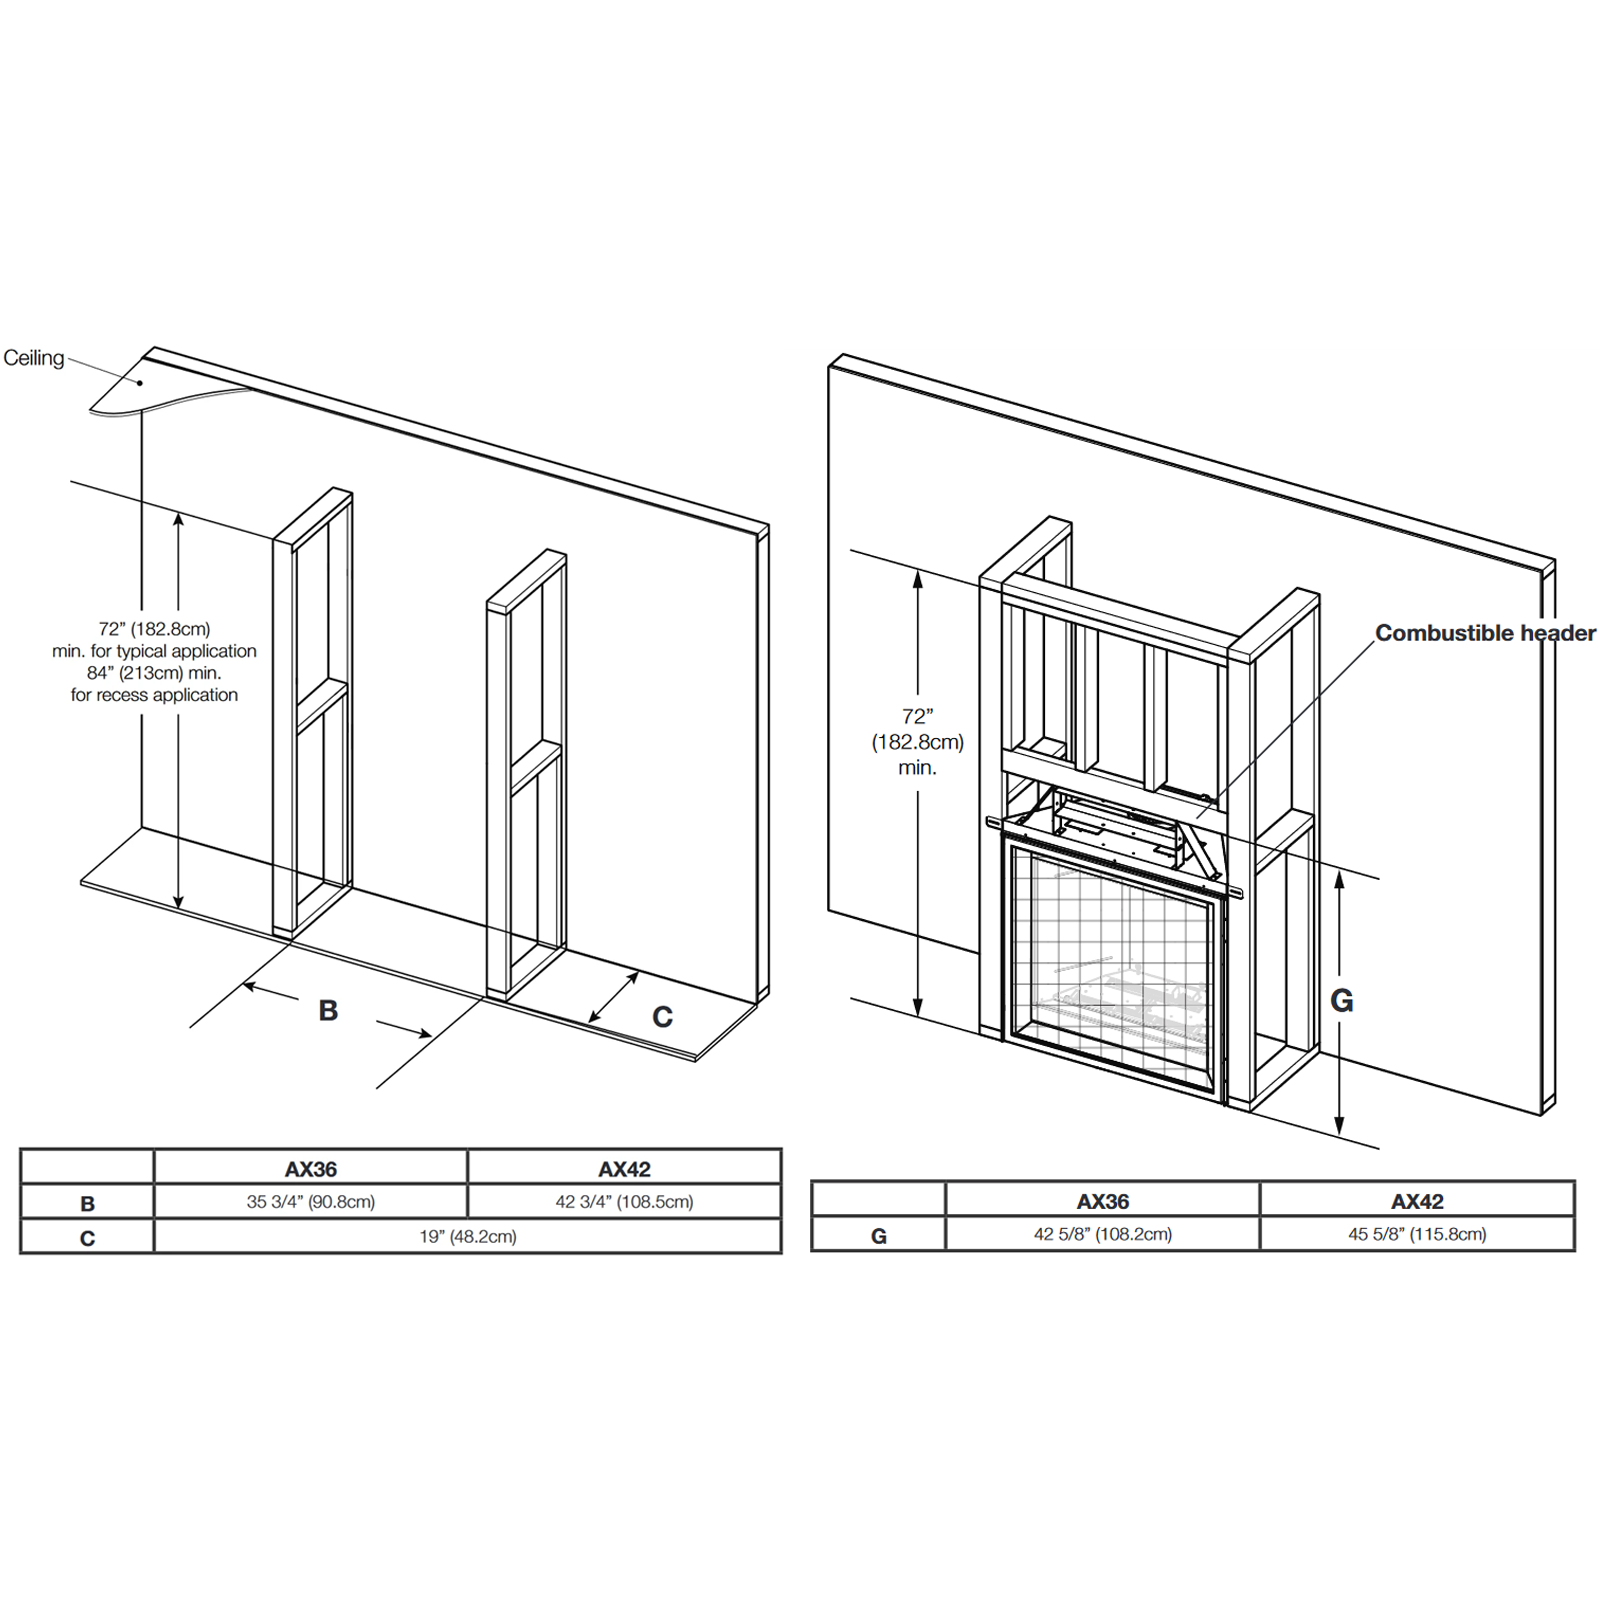 AX36 Technical Drawing 2